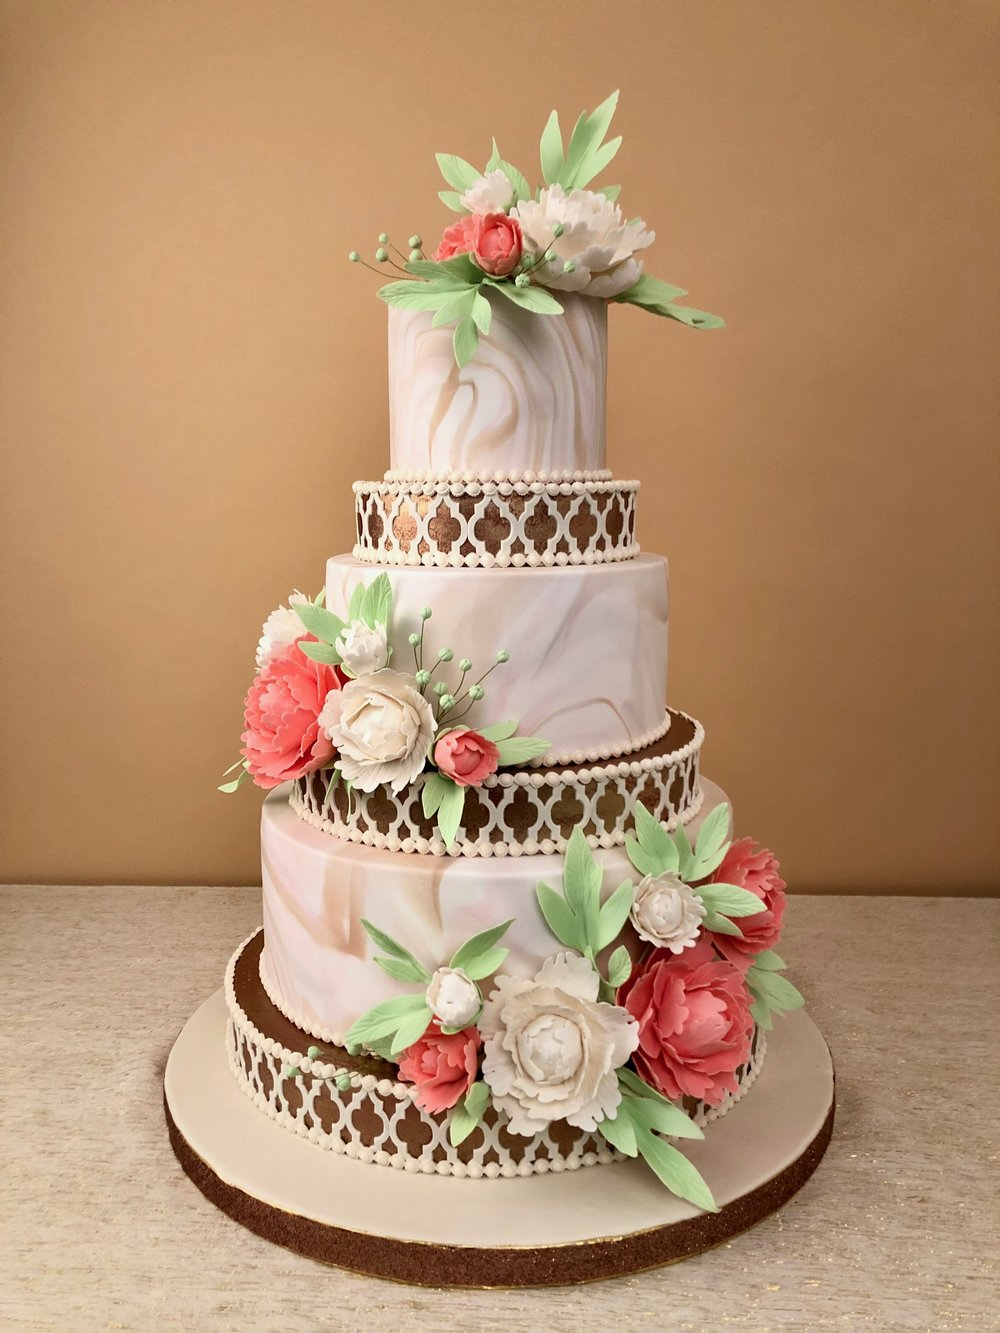 NJ This Classic Marble Wedding Cake Was Published in (201) The Best Of Bergen Magazine